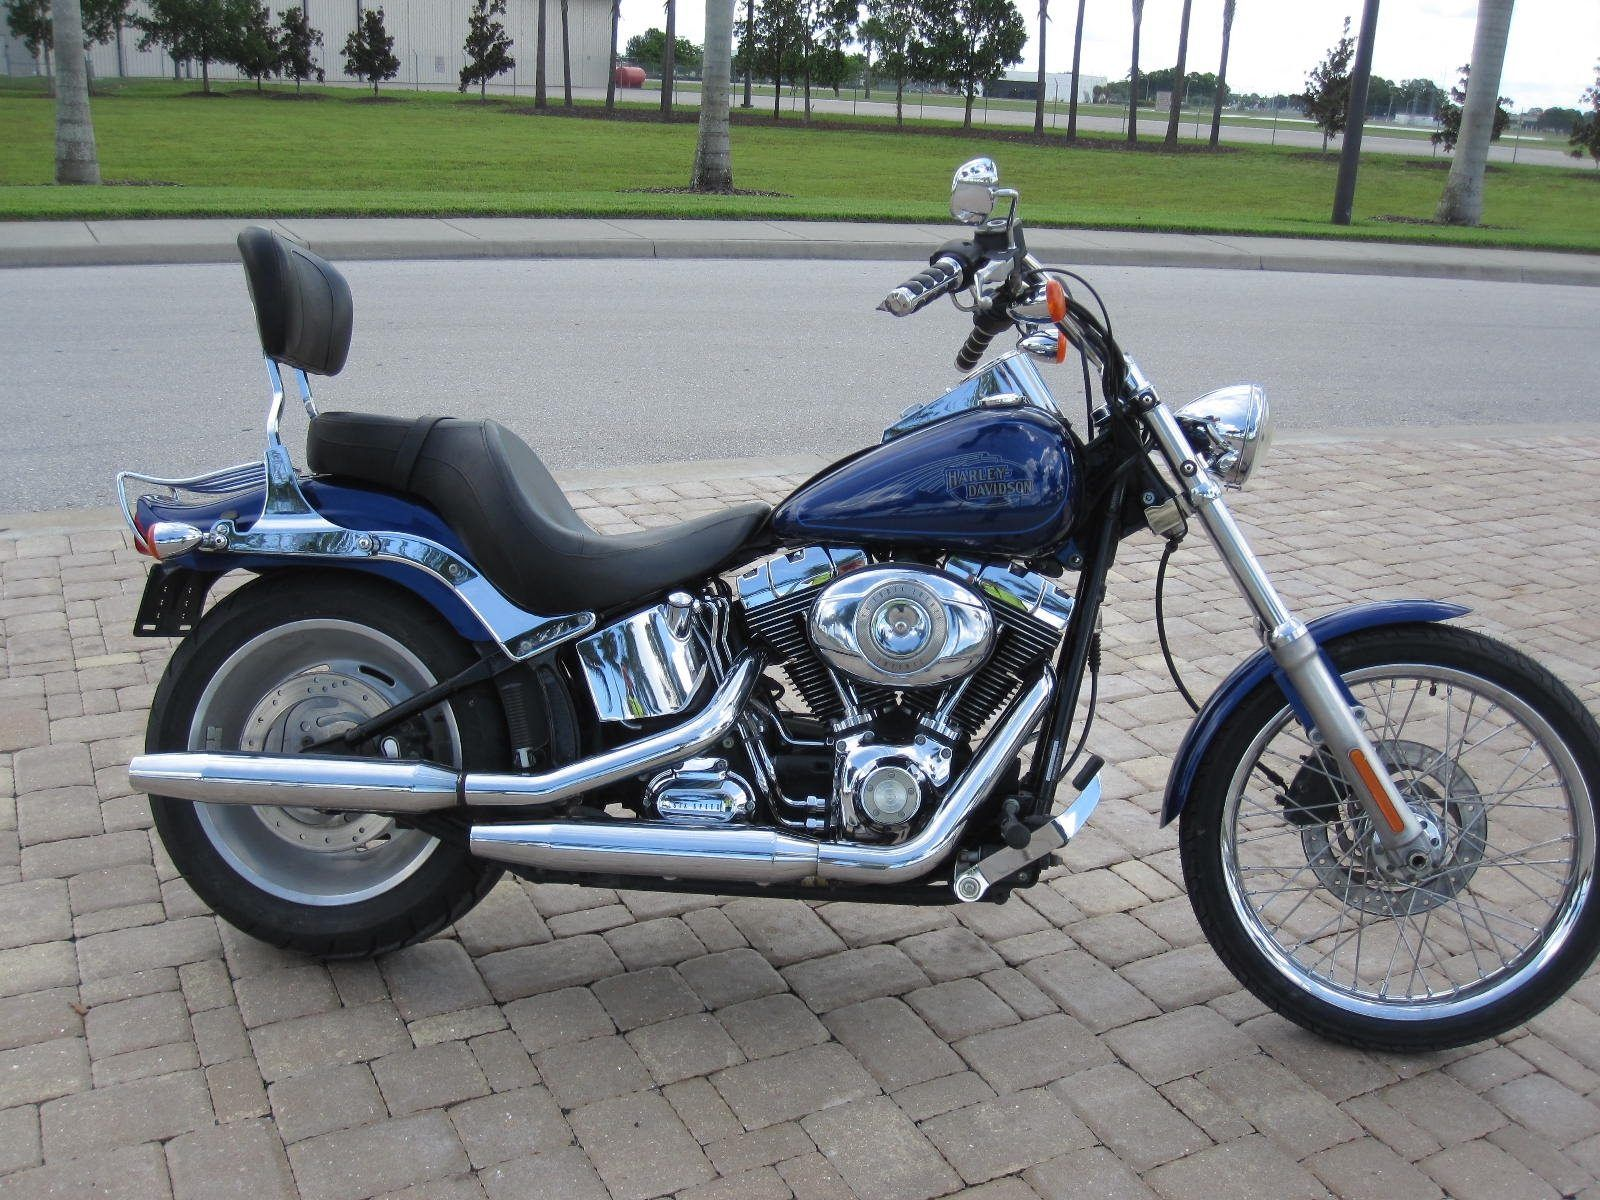 Used 2007 Harley-Davidson Softail Custom Motorcycles in Fort Myers ...